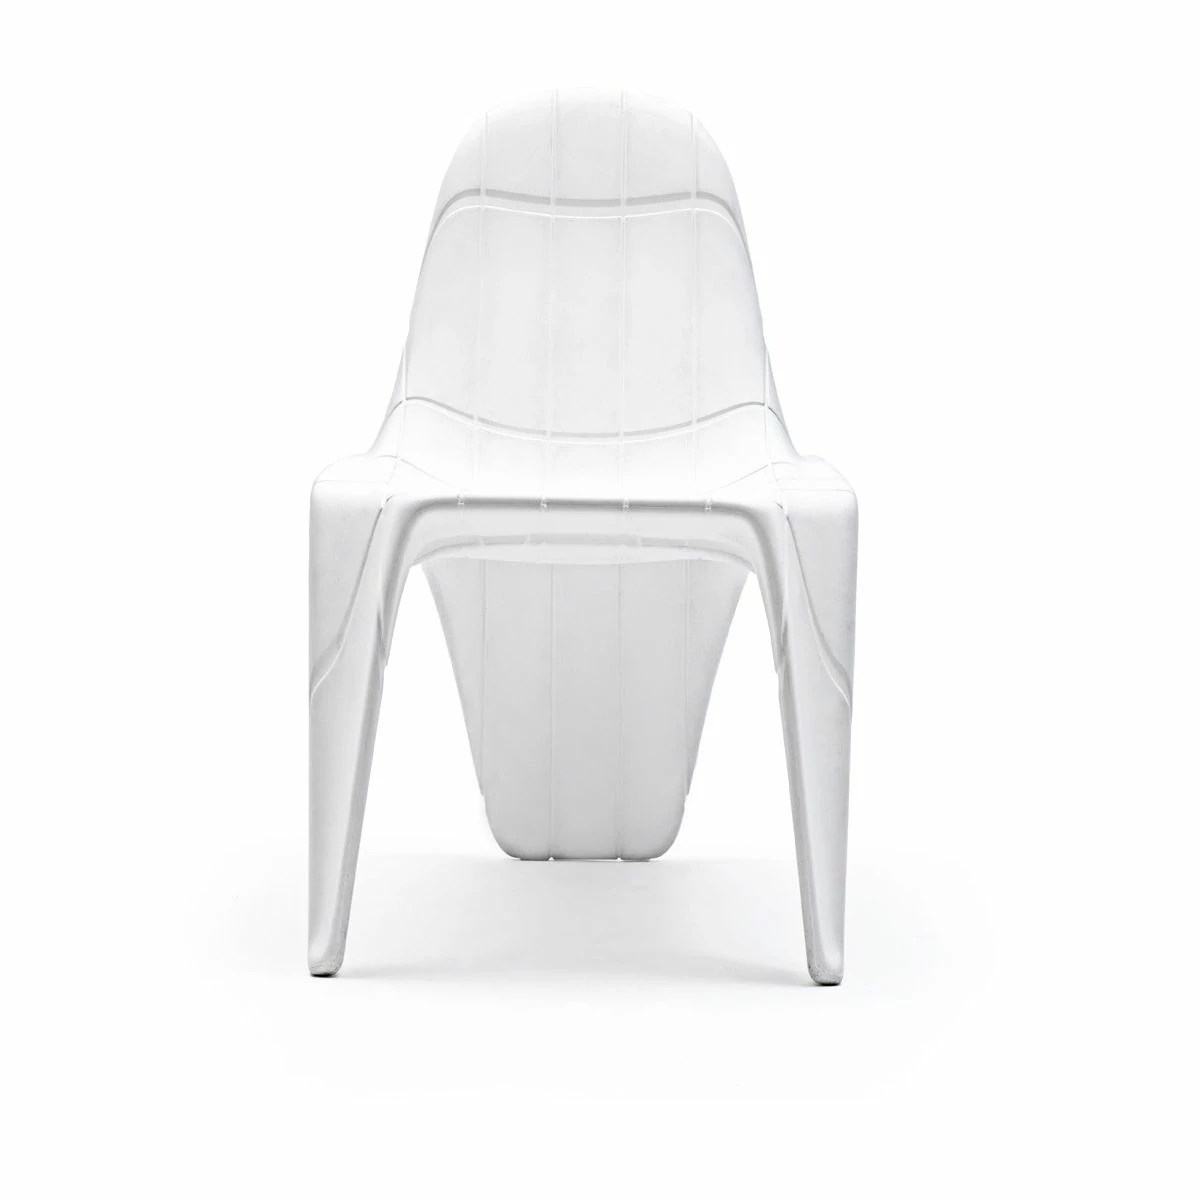 Chaise Extérieure Design Chaise Exterieur Design And Moderne F3 Vondom Zendart Design